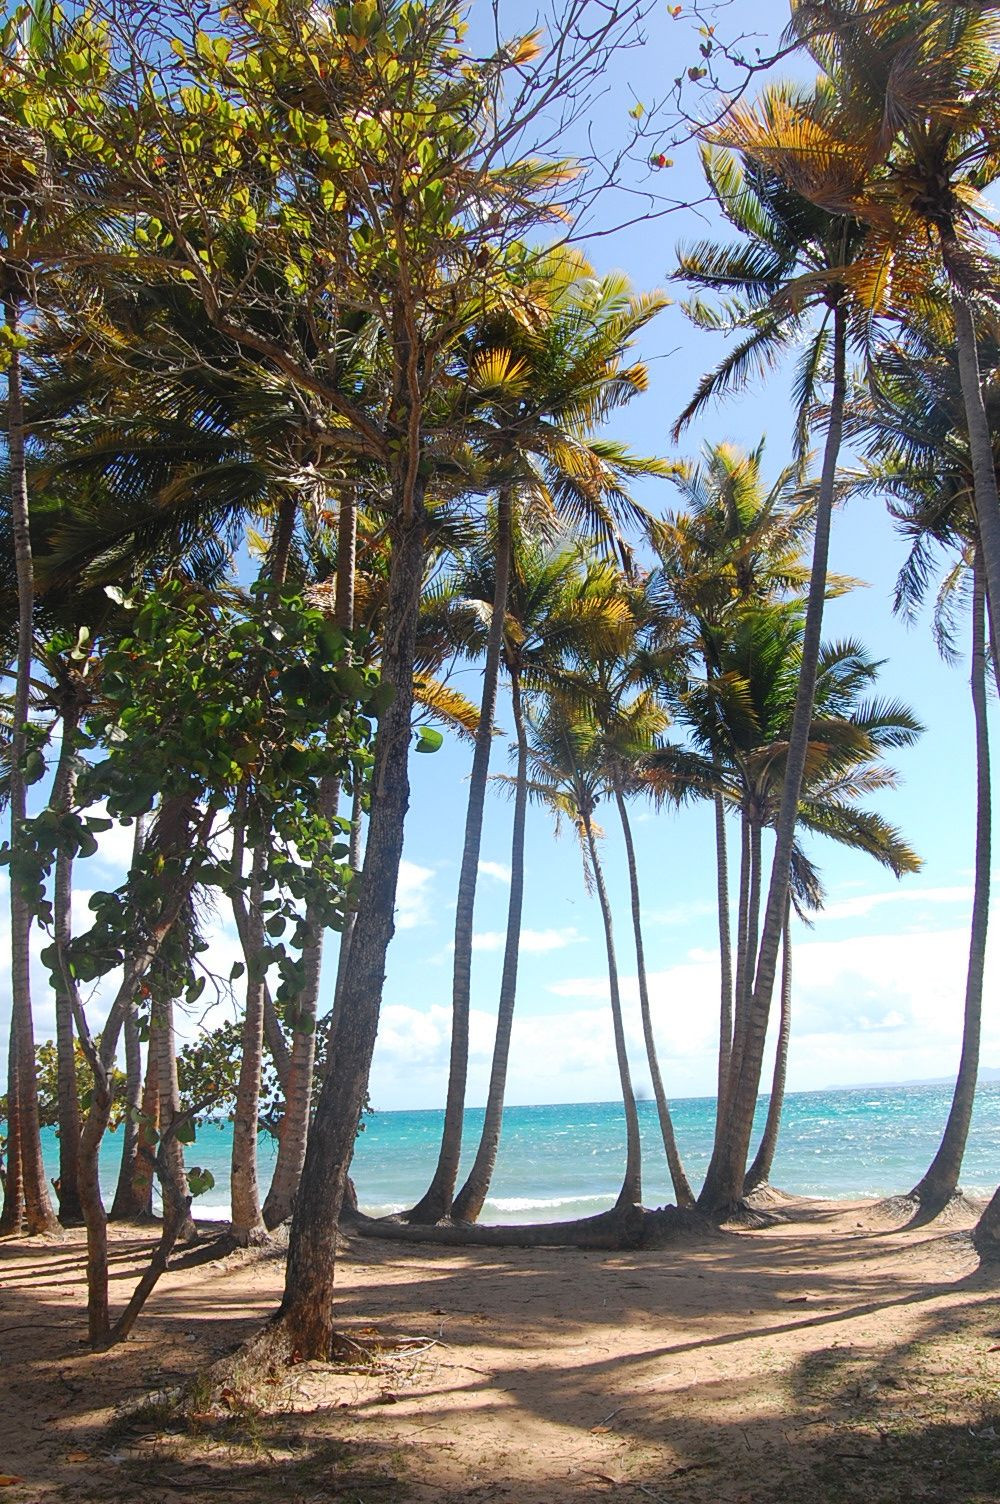 Humacao, Puerto Rico We ate at a place across from a